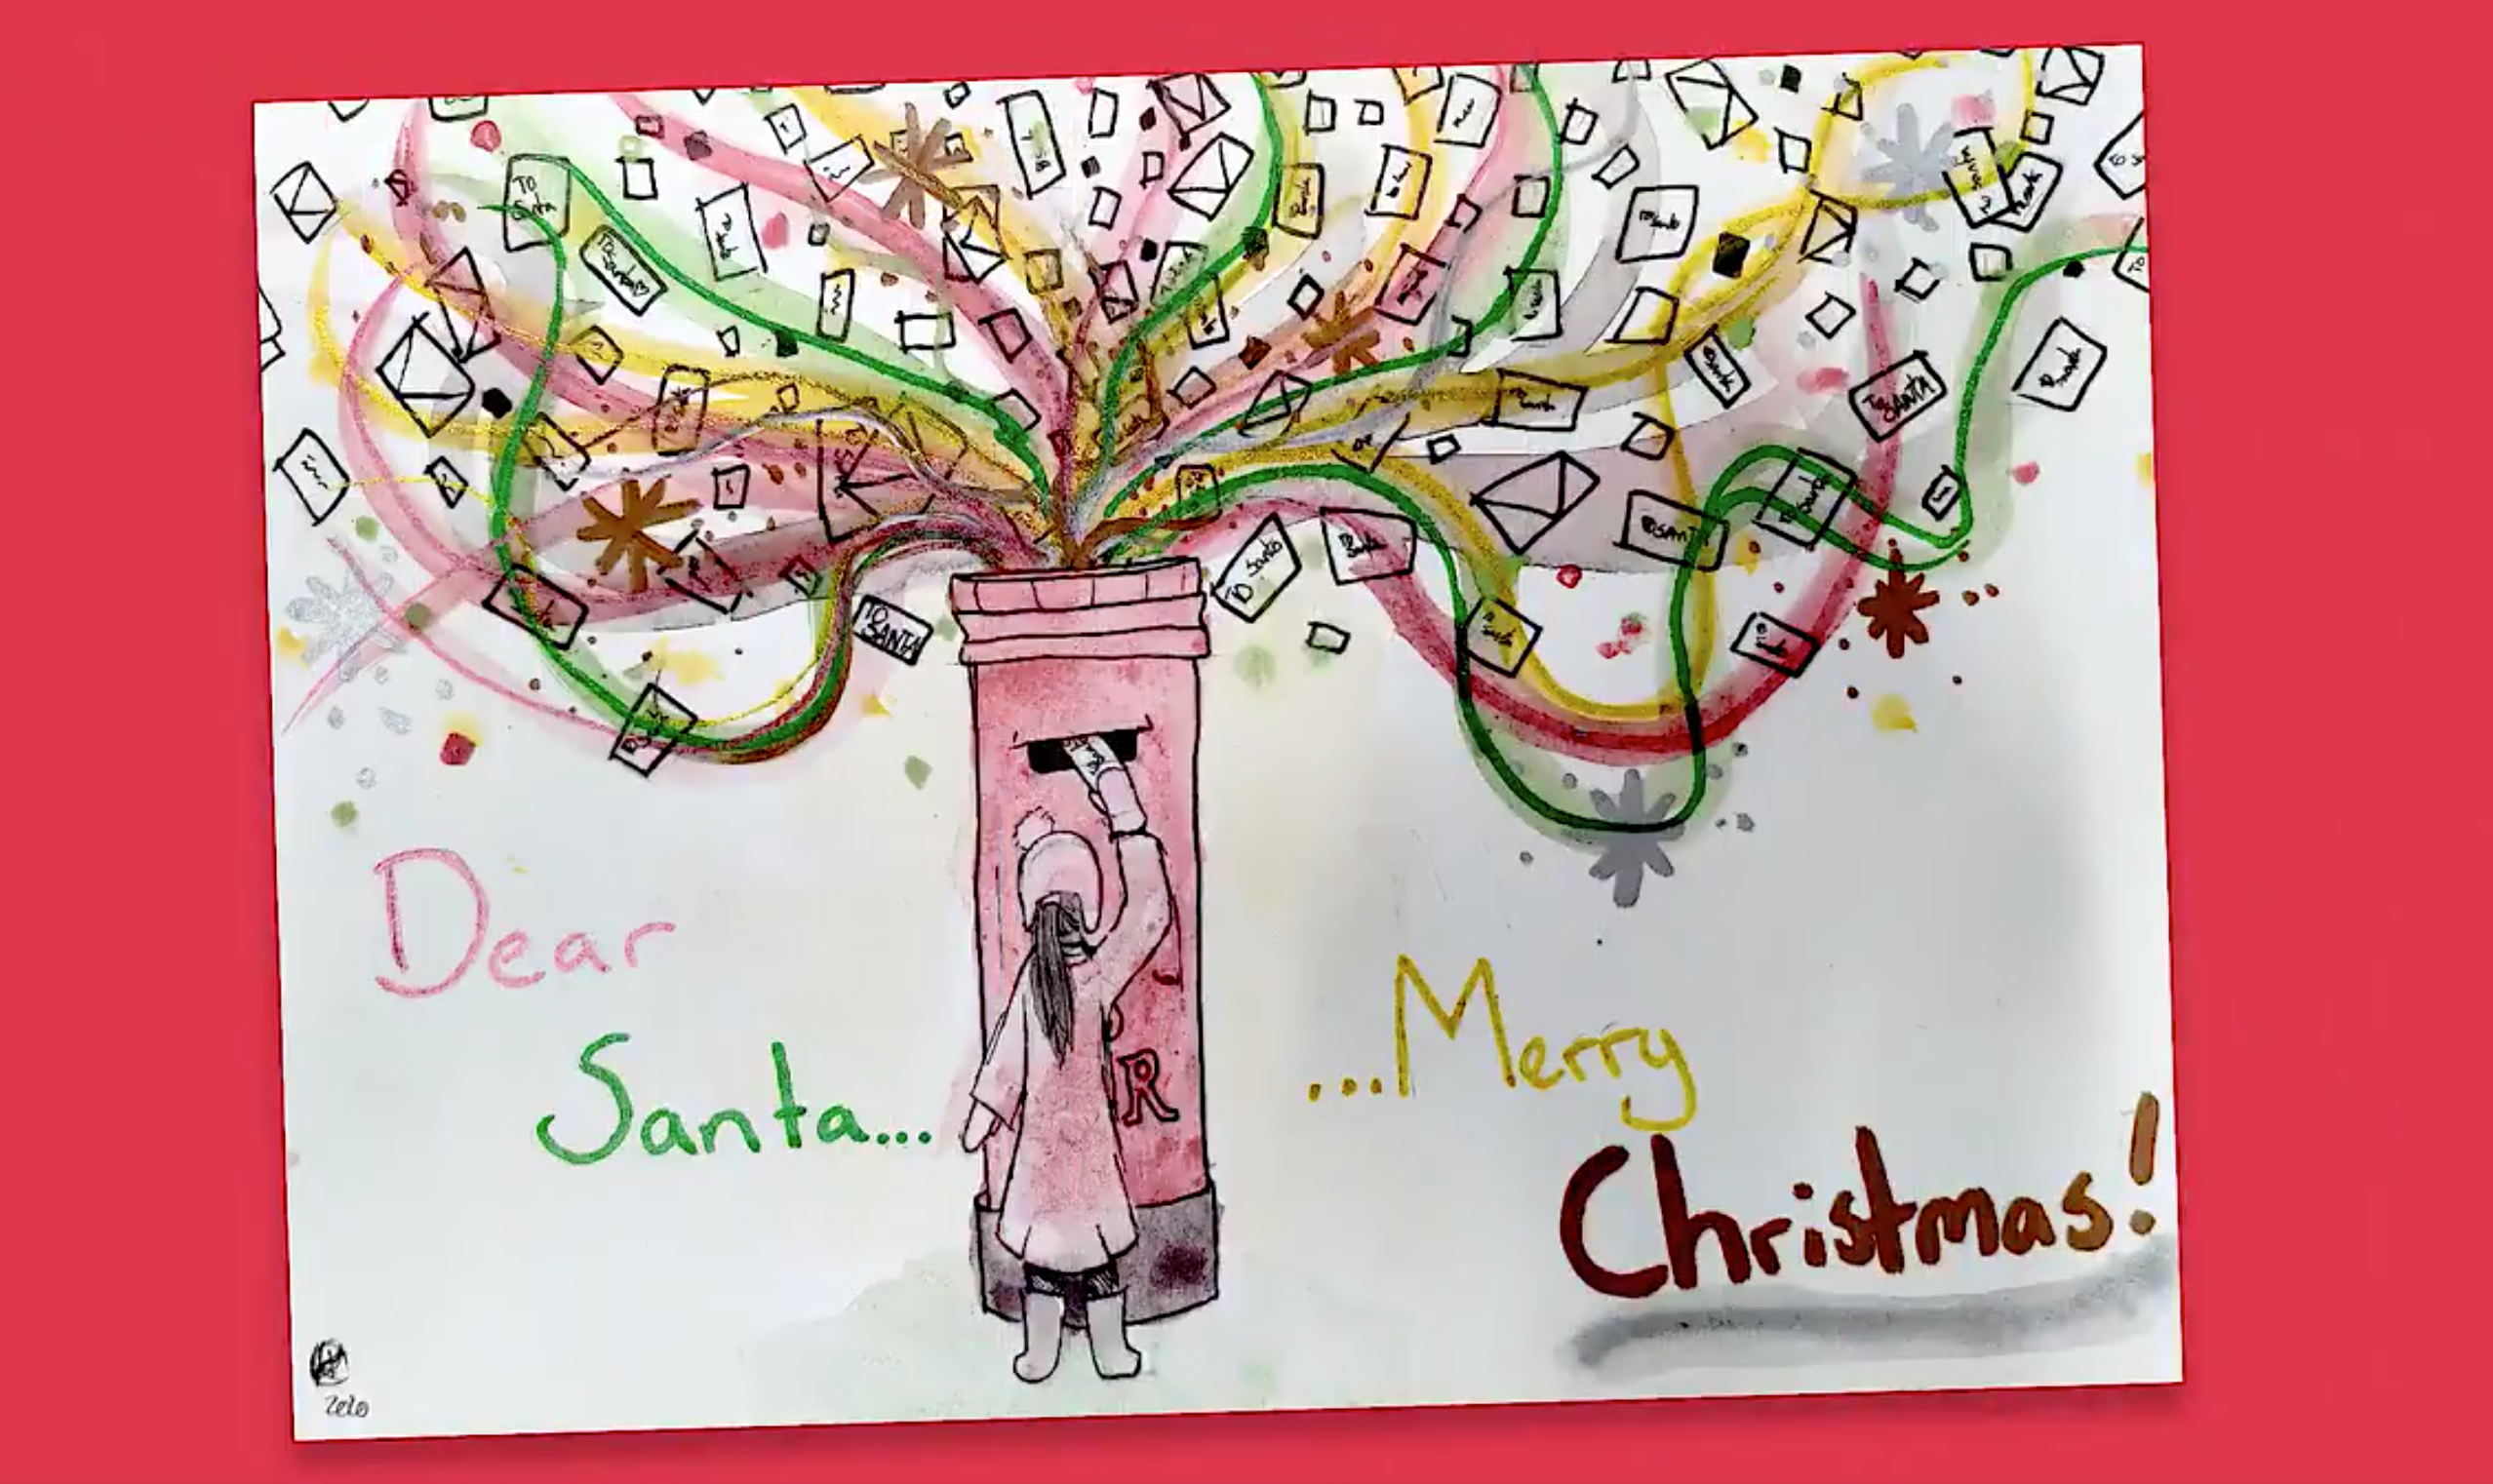 Above: One of the entries to Royal Mail's design a Christmas card consumer competition.